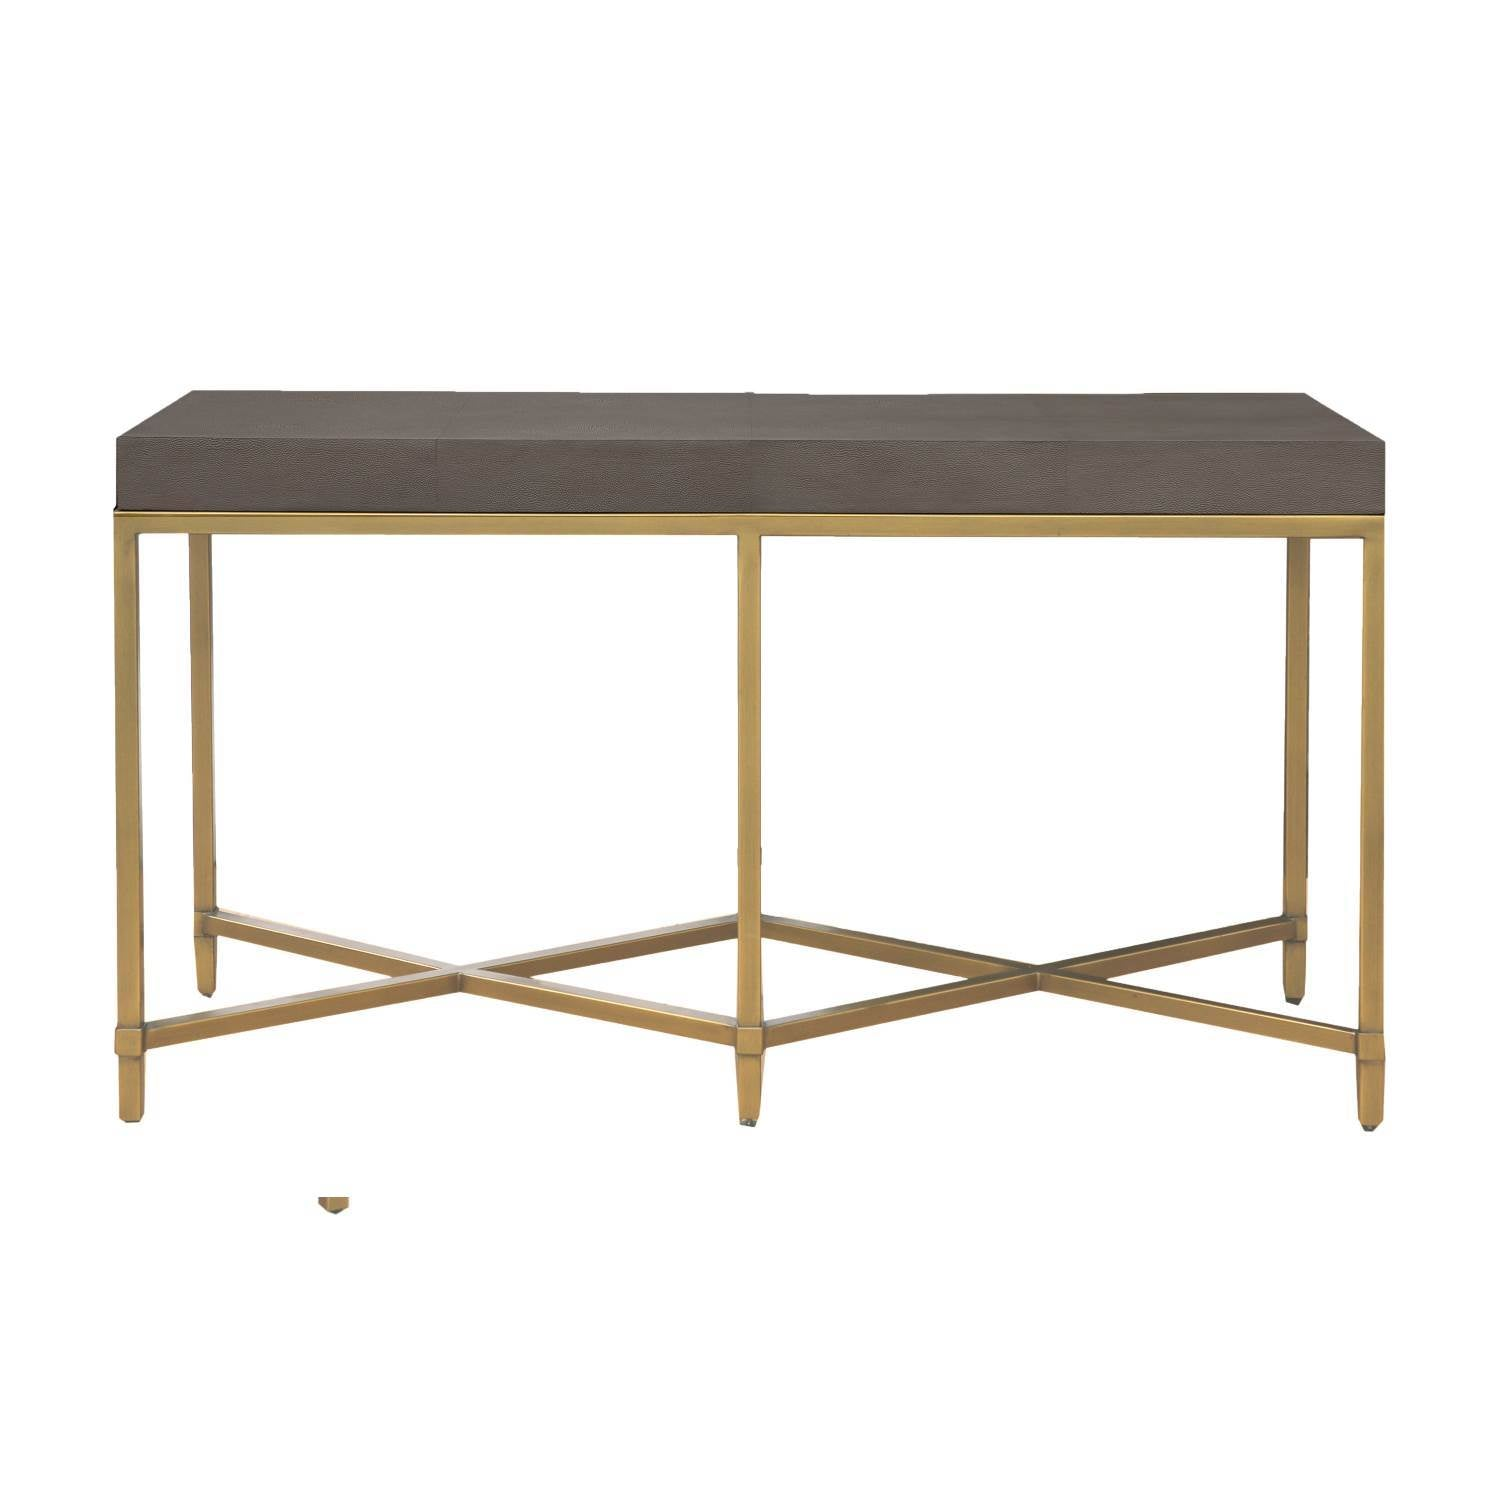 Strand Shagreen Console Table in Gray Shagreen